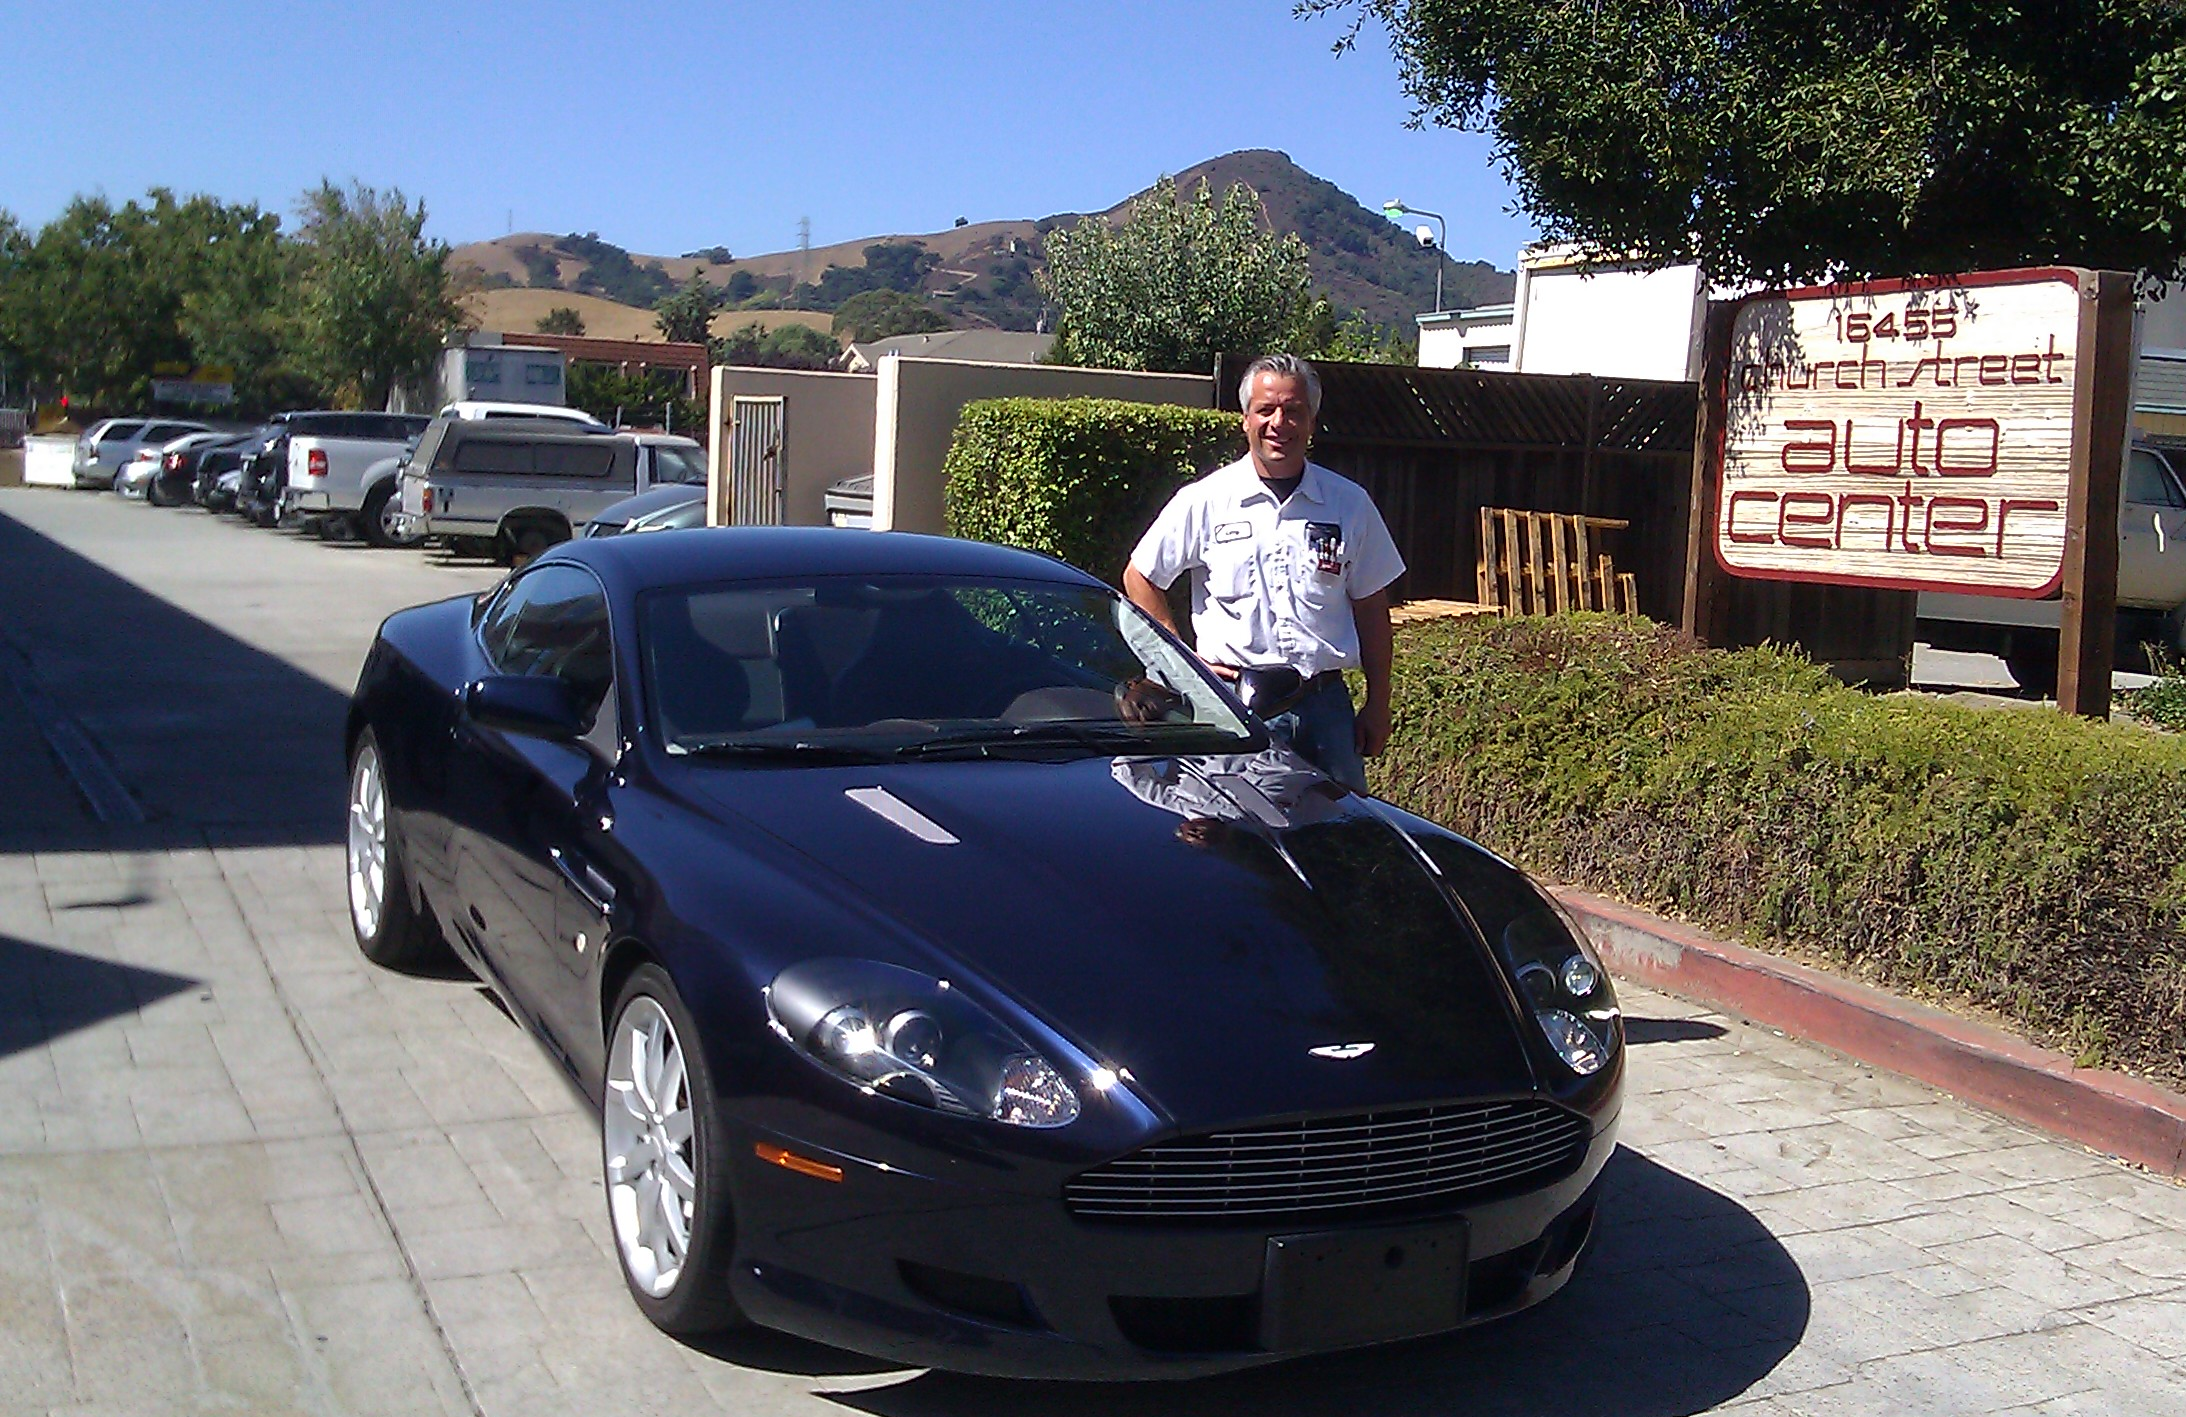 Aston Martin DB9 - Morgan Hill Auto Body - Larry Biral